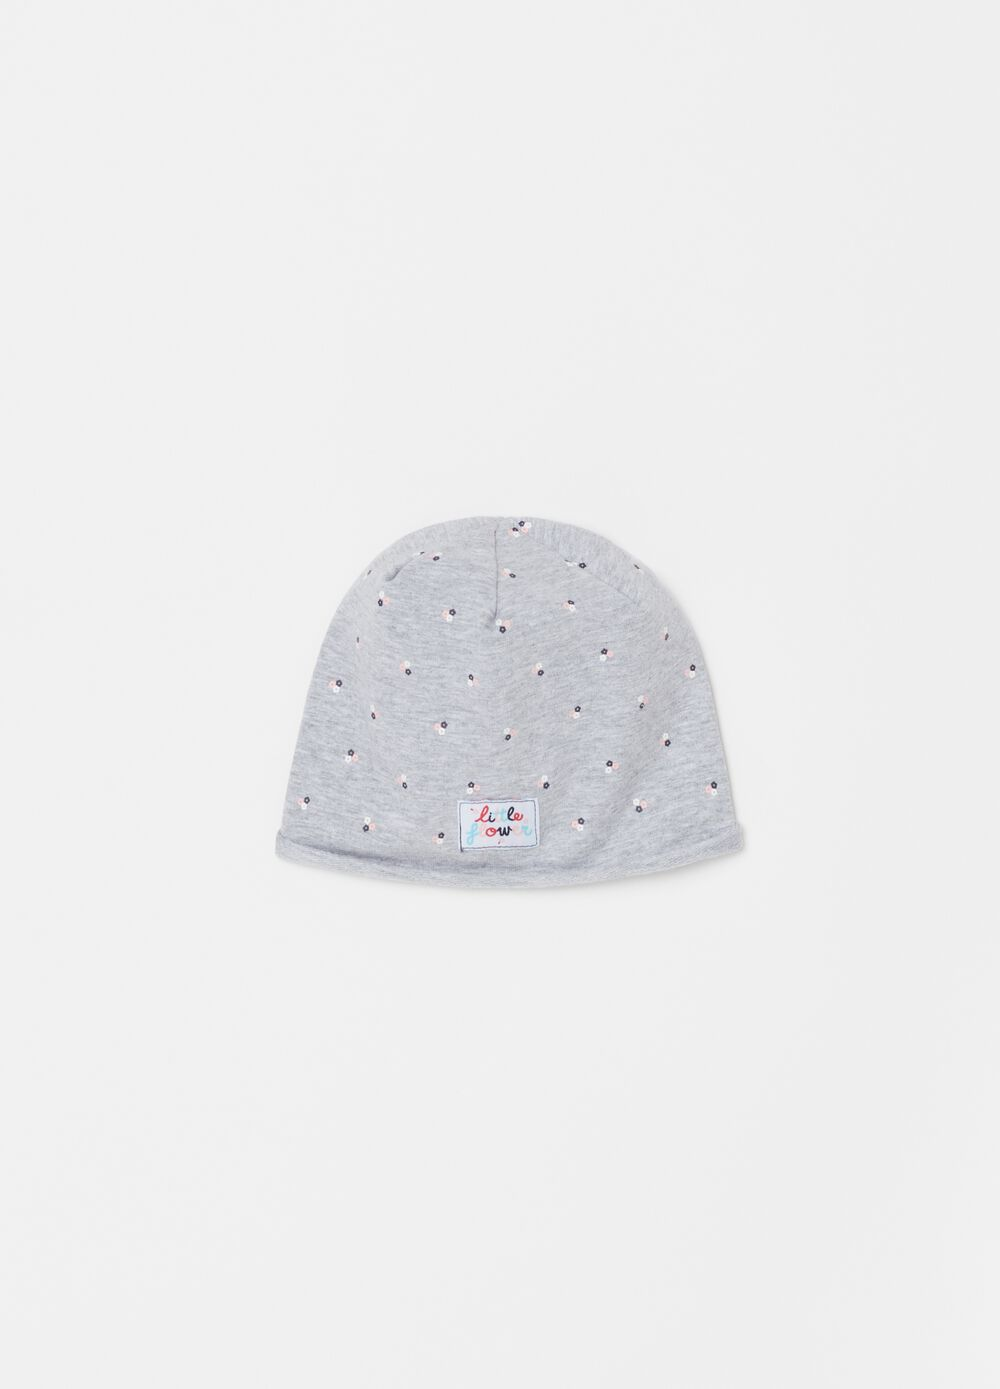 Jersey hat with small flowers